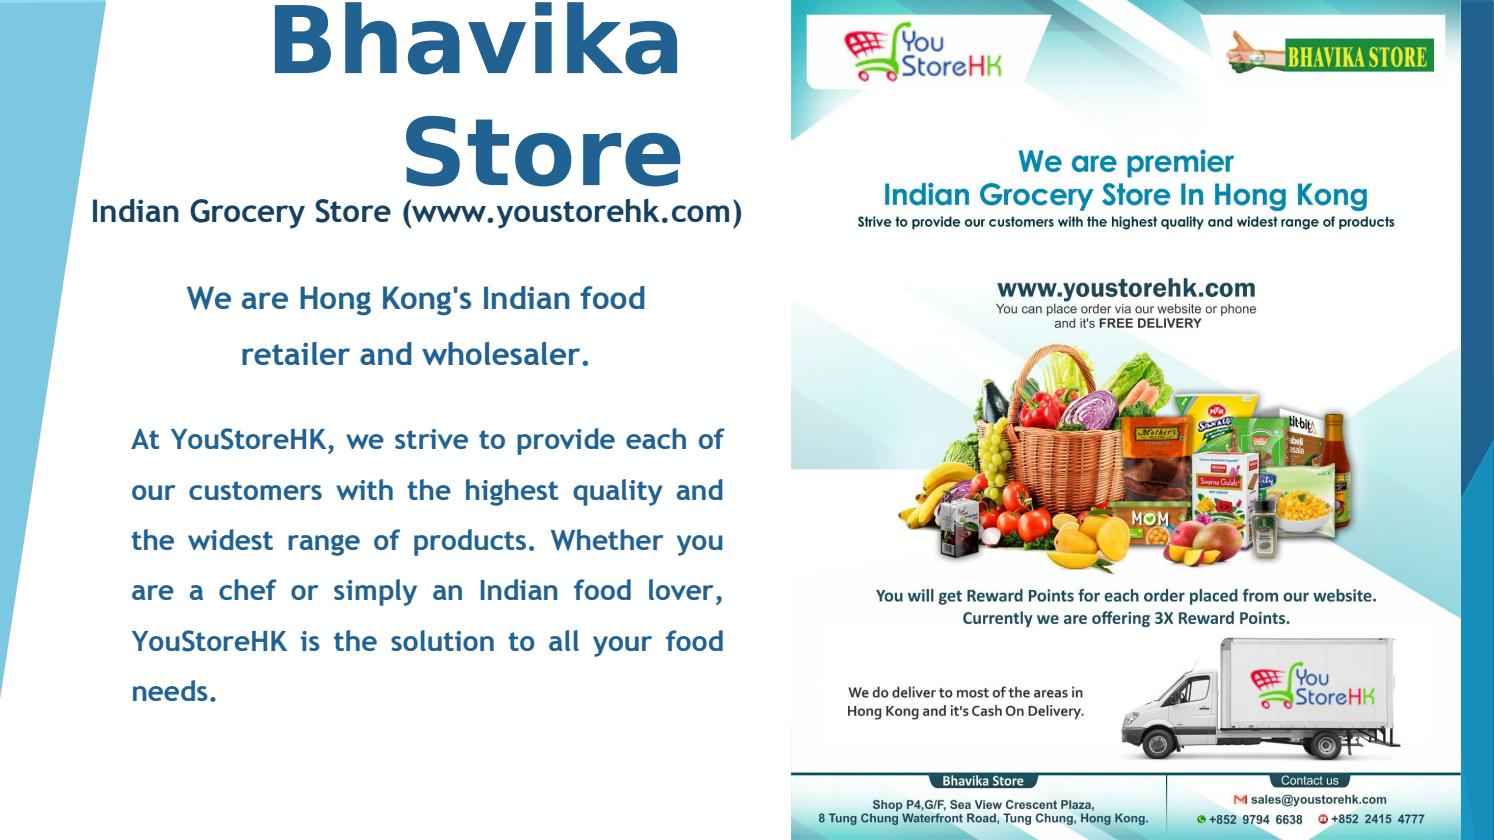 f8852313f4 YouStoreHK Online Indian Grocery Store in Tung Chung, Hong Kong by  Youstorehk HongKong - issuu